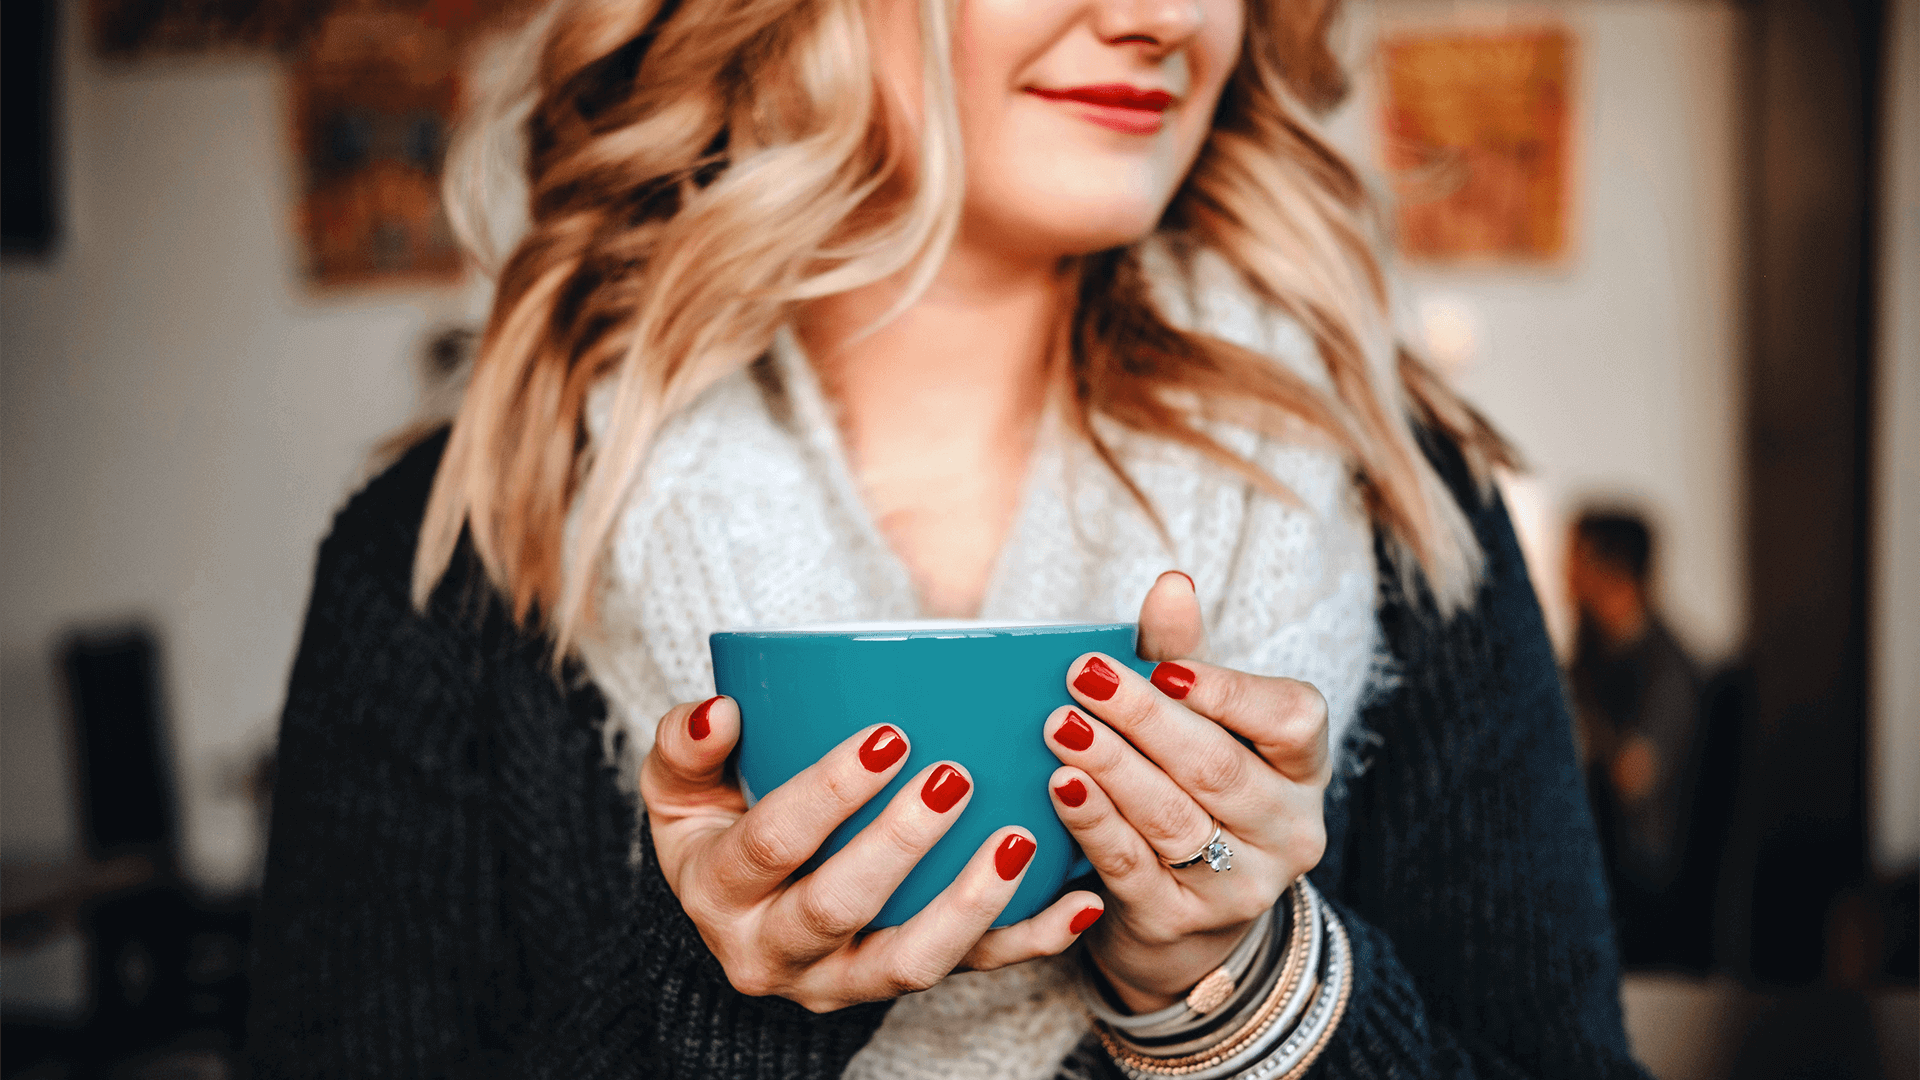 Smiling woman holding coffee cup